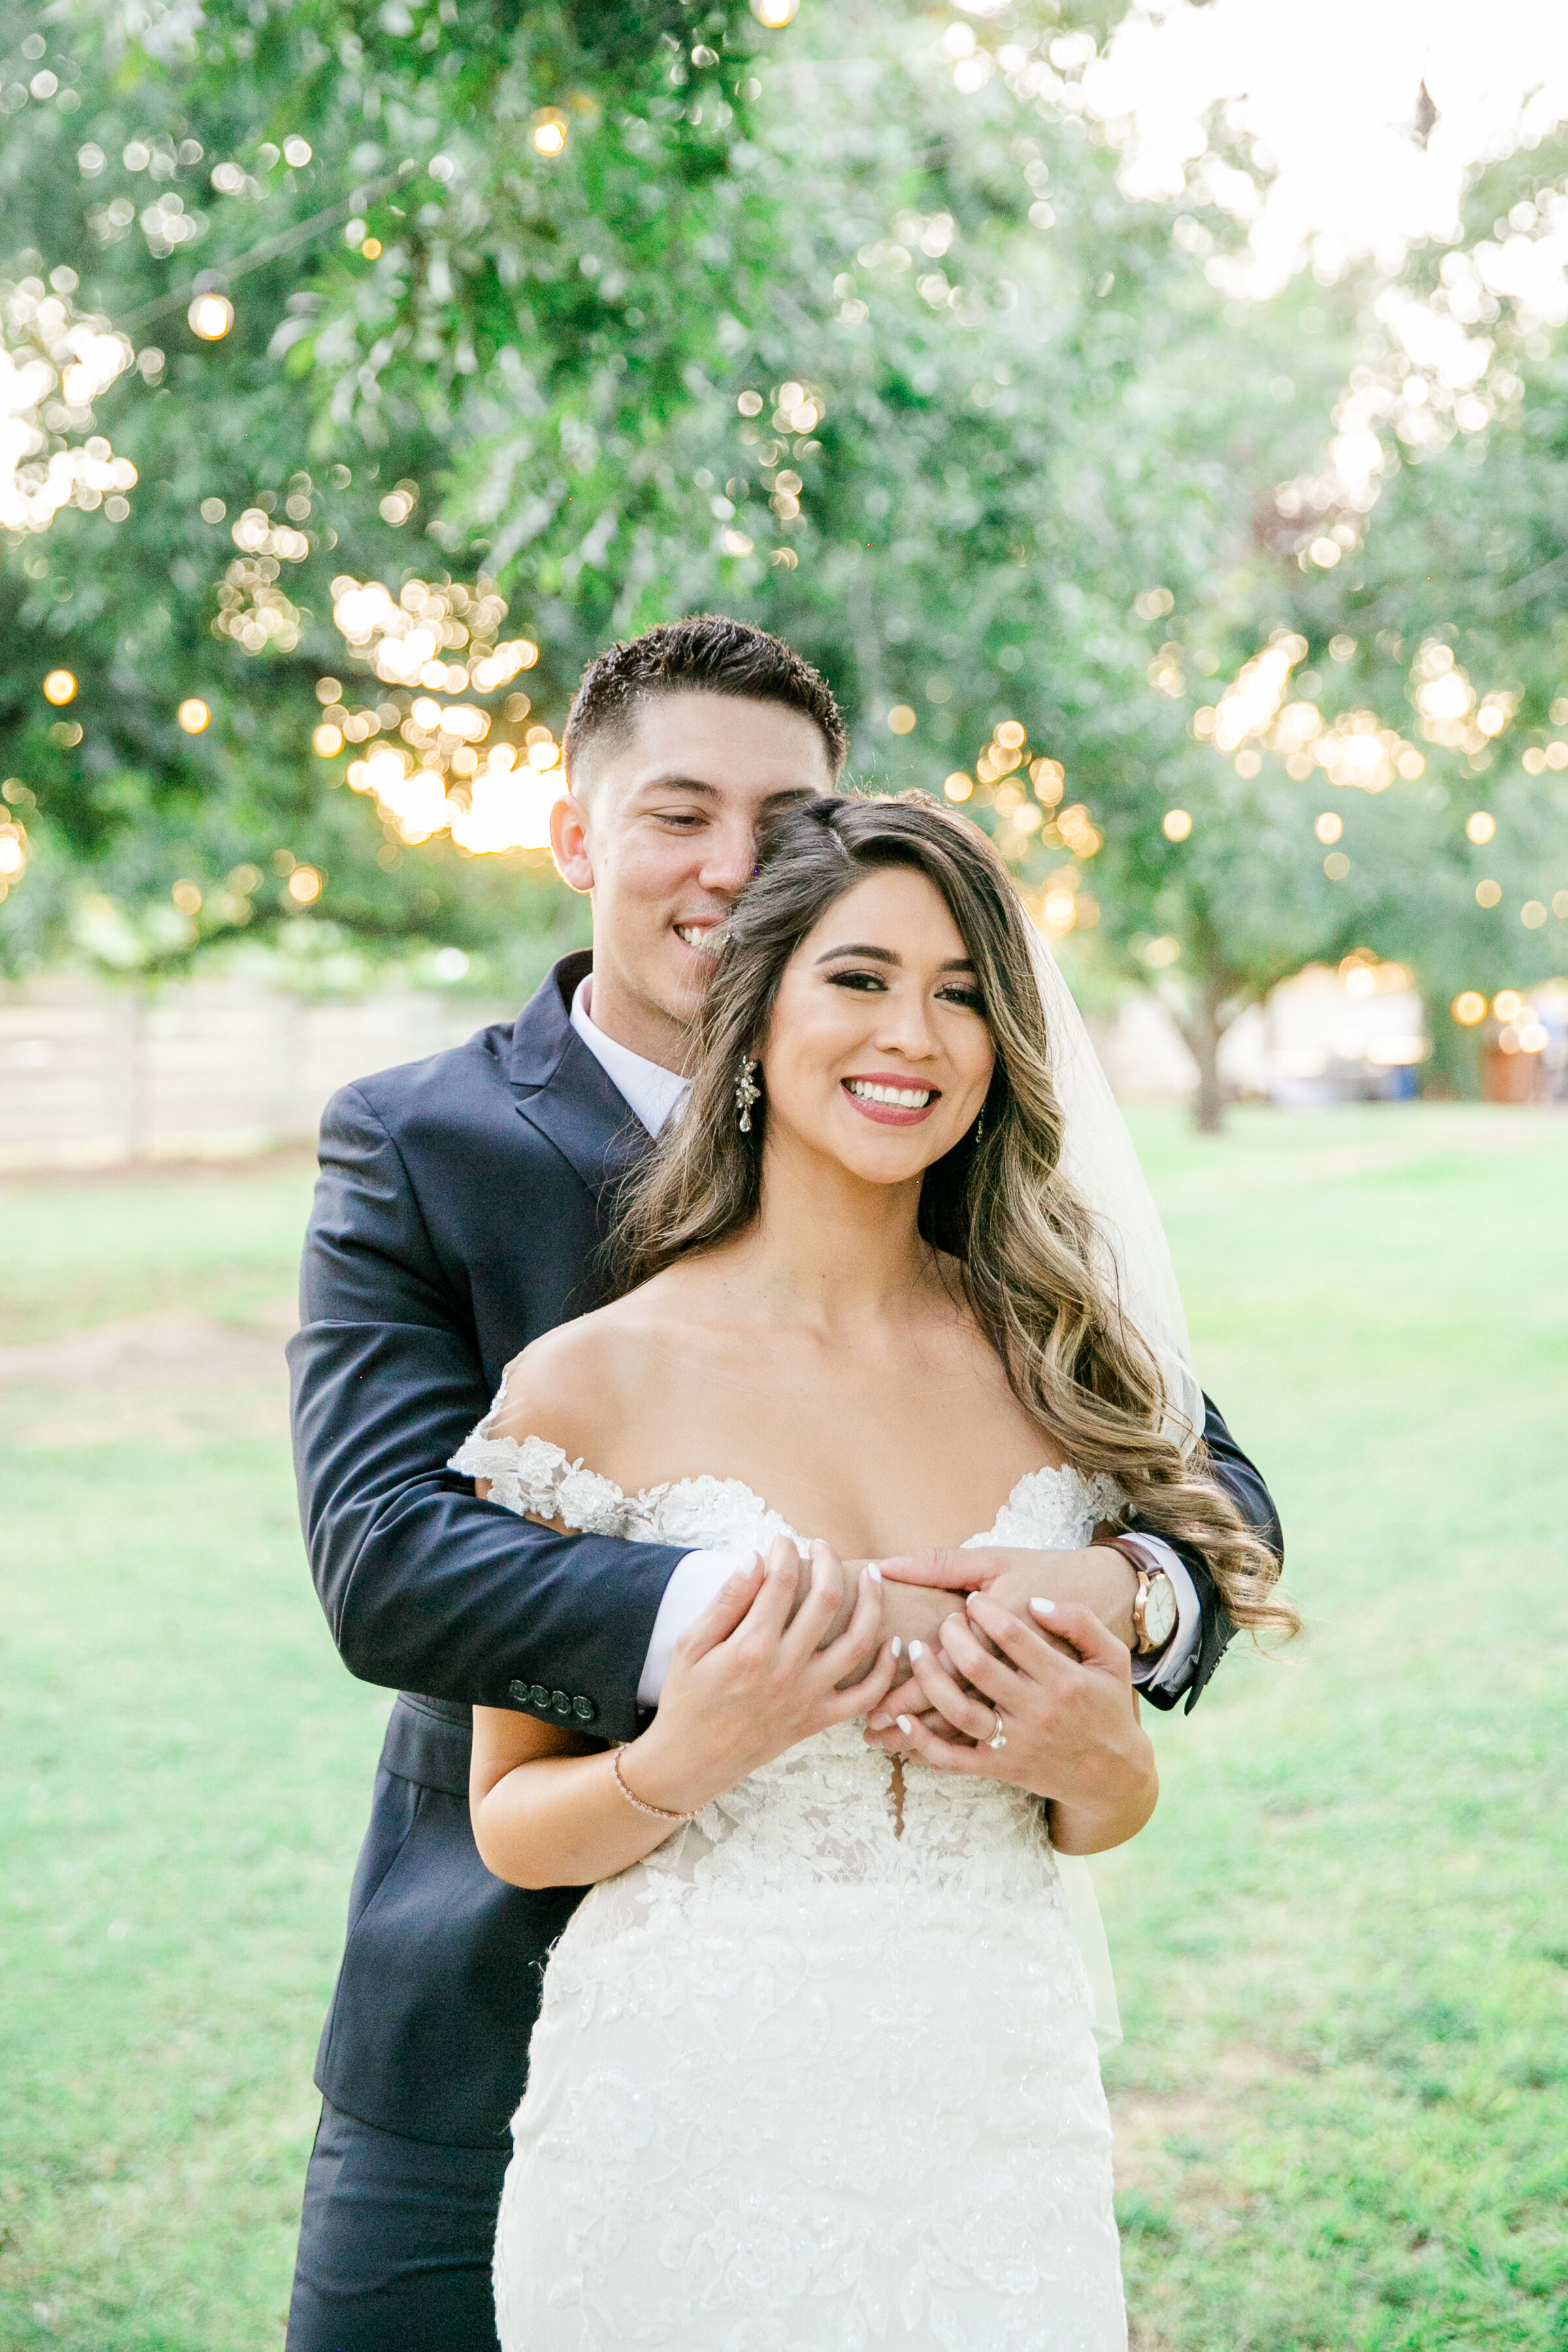 Karlie Colleen Photography - Phoenix Arizona - Farm At South Mountain Venue - Vanessa & Robert-620